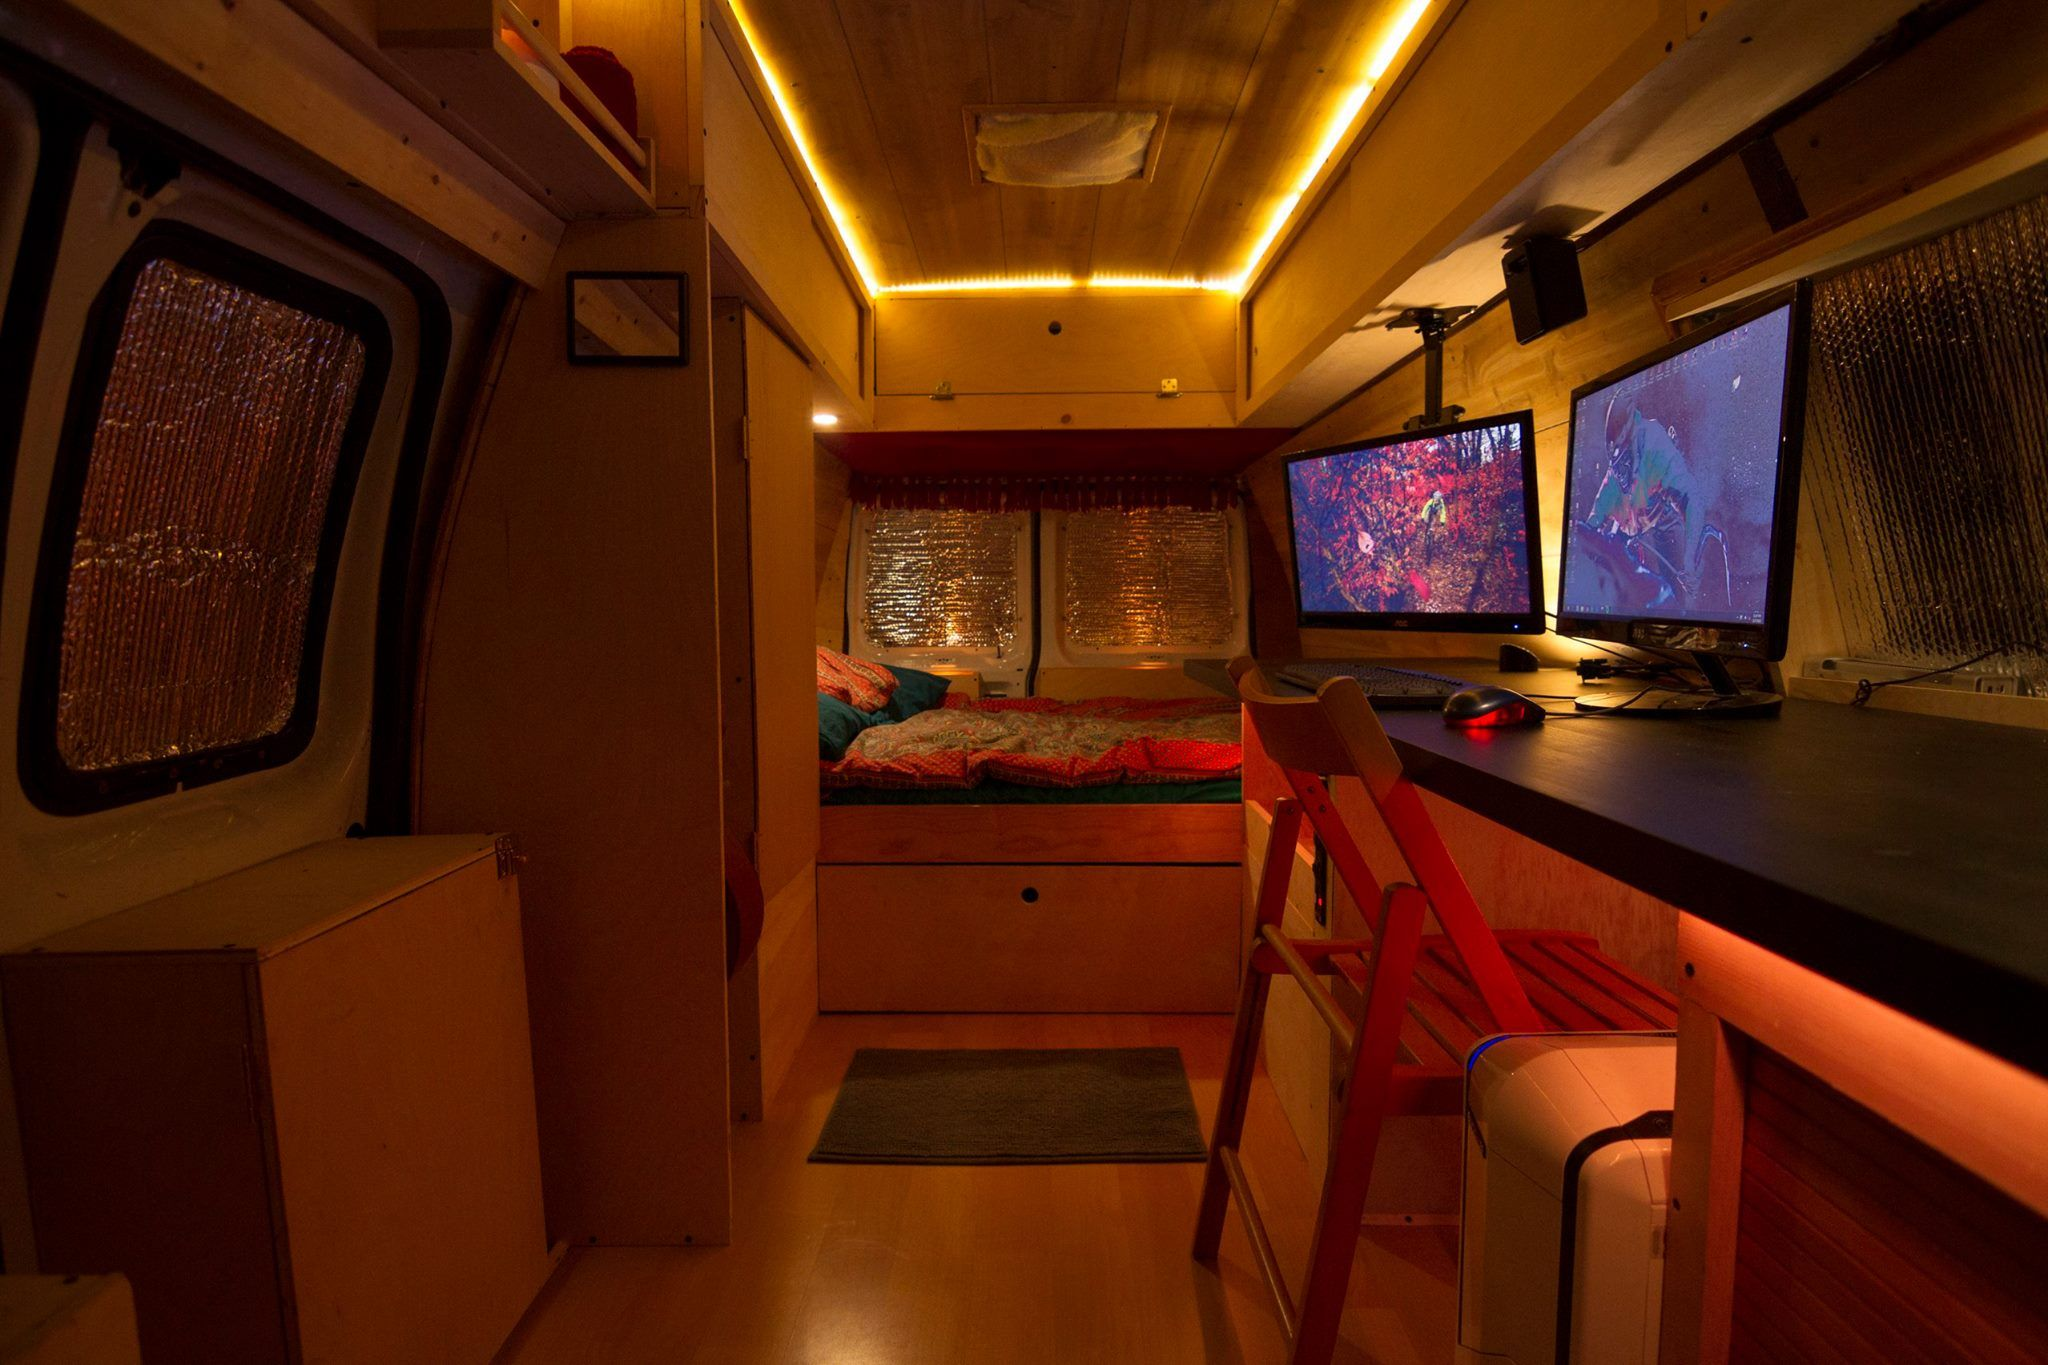 How I turned an old NYPD Surveillance van into a home. (#QuickCrafter)